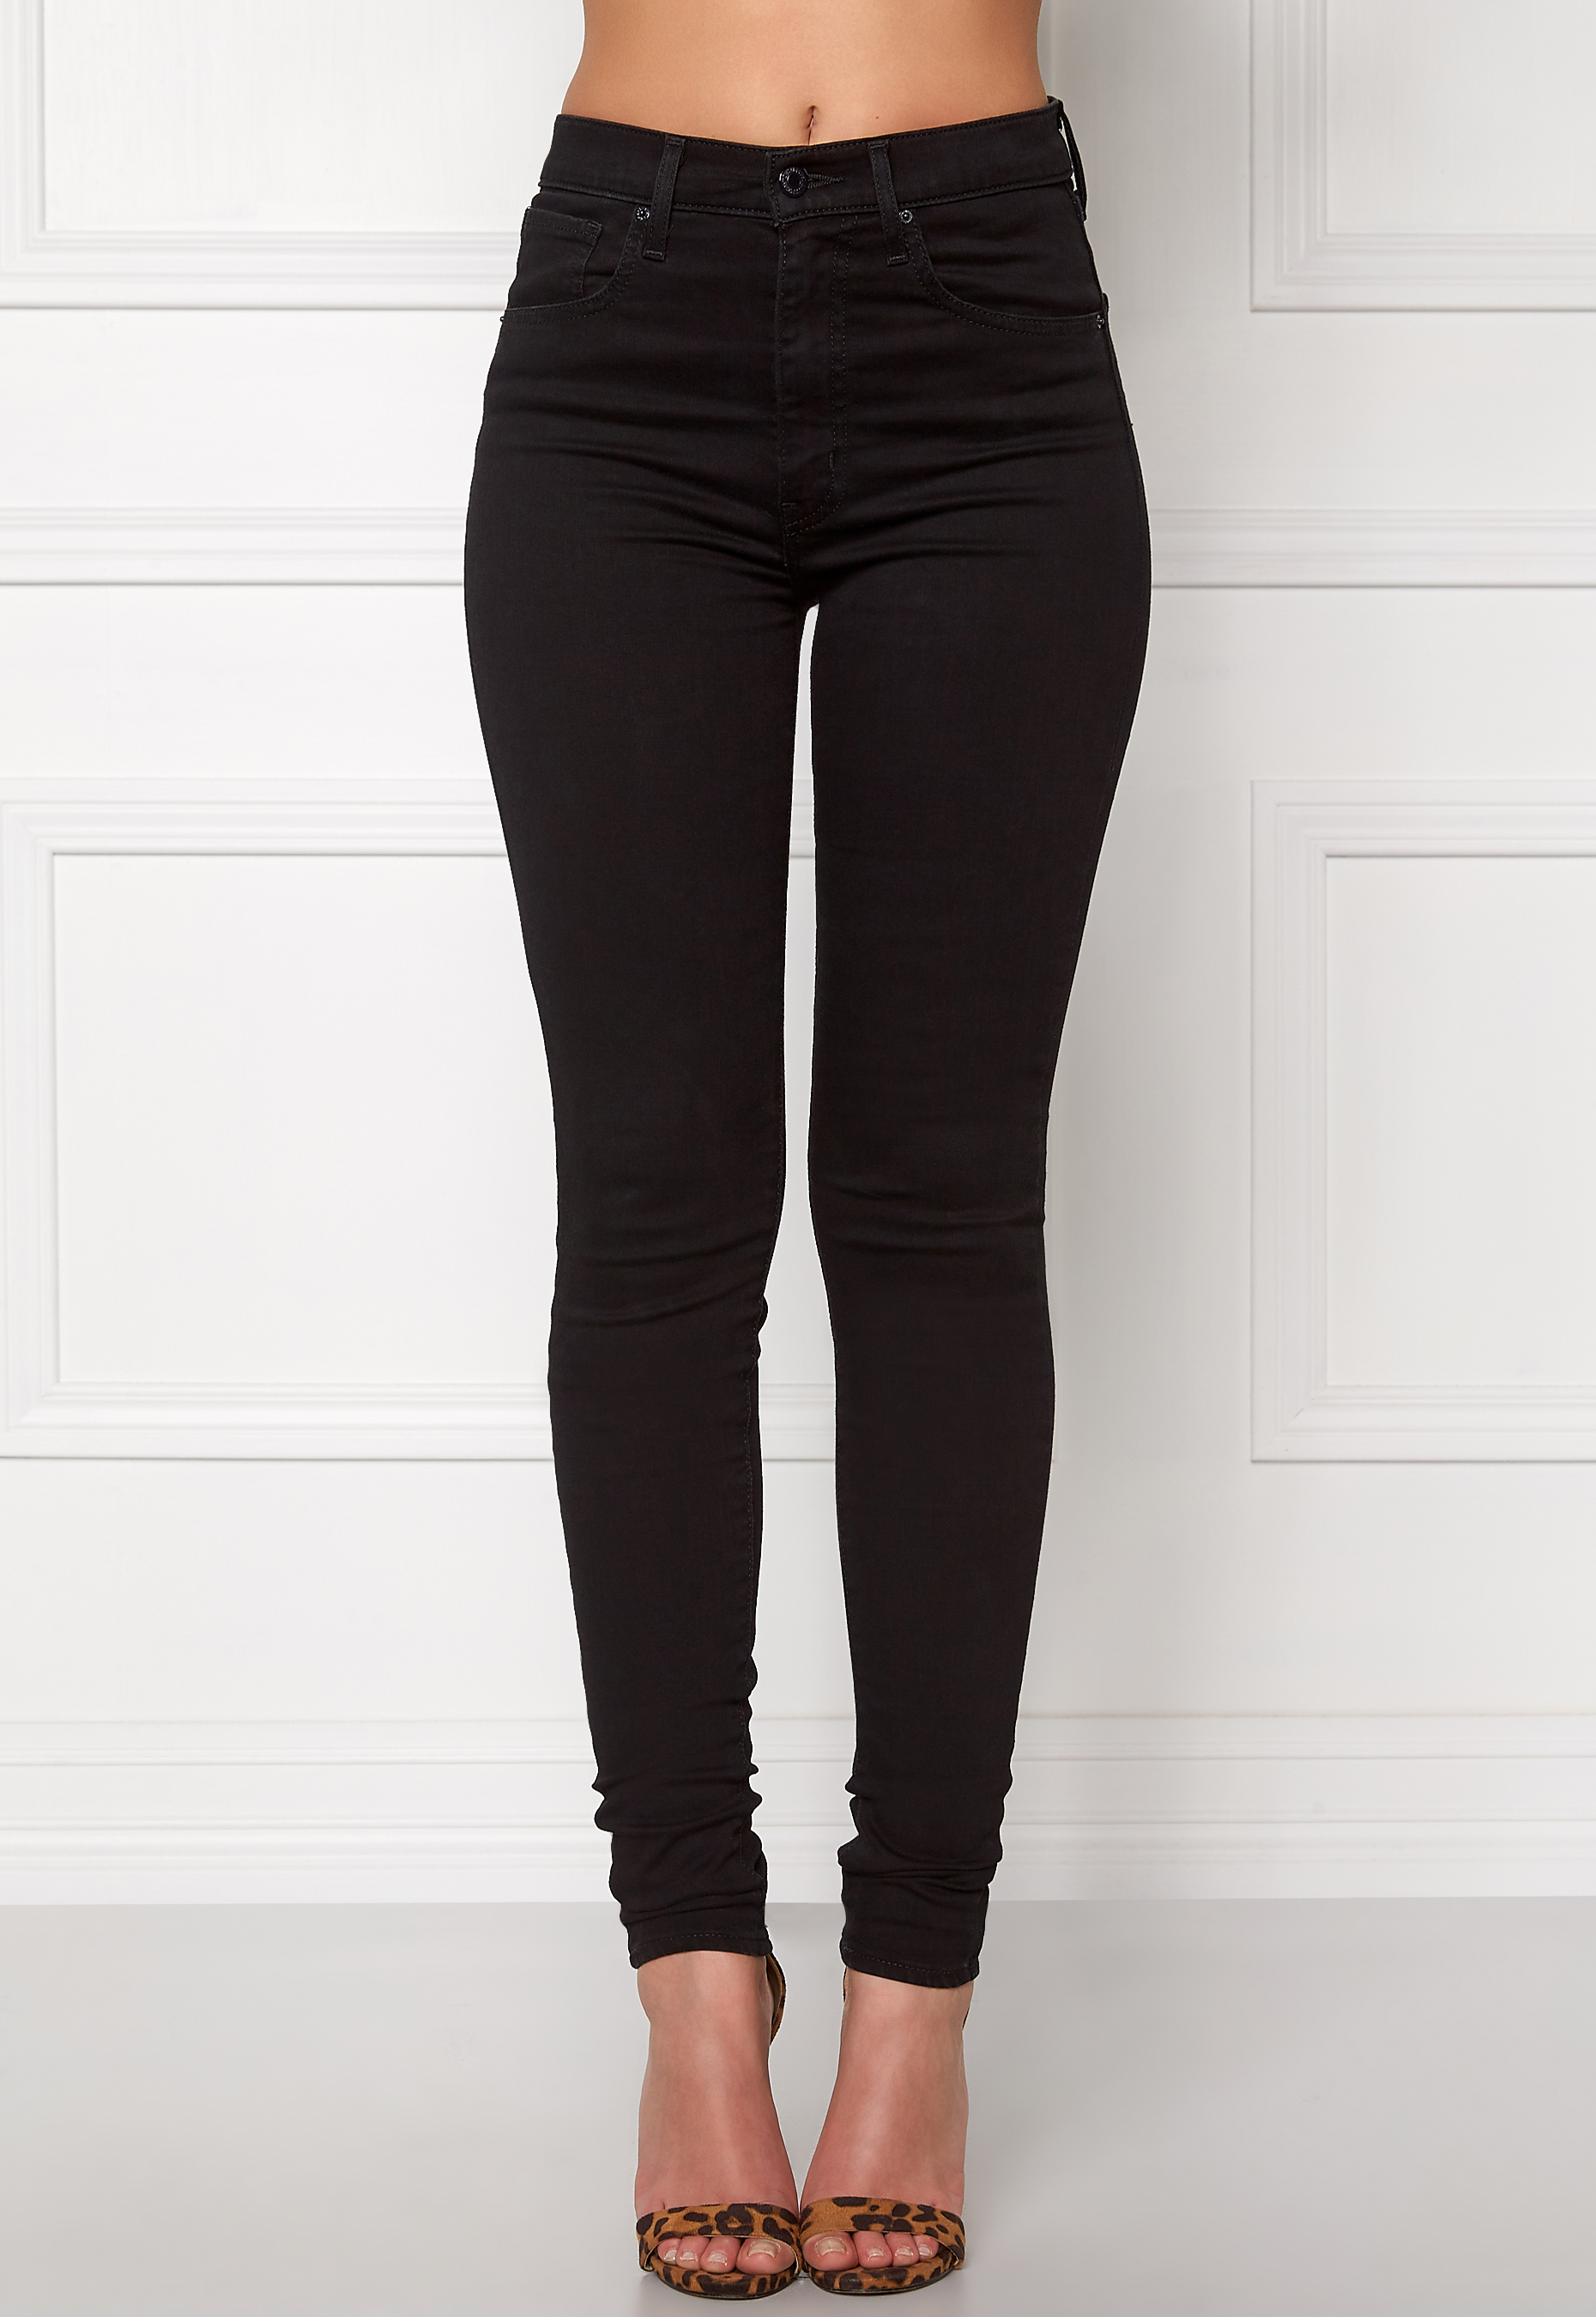 LEVI'S Mile High Super Skinny Black Cove